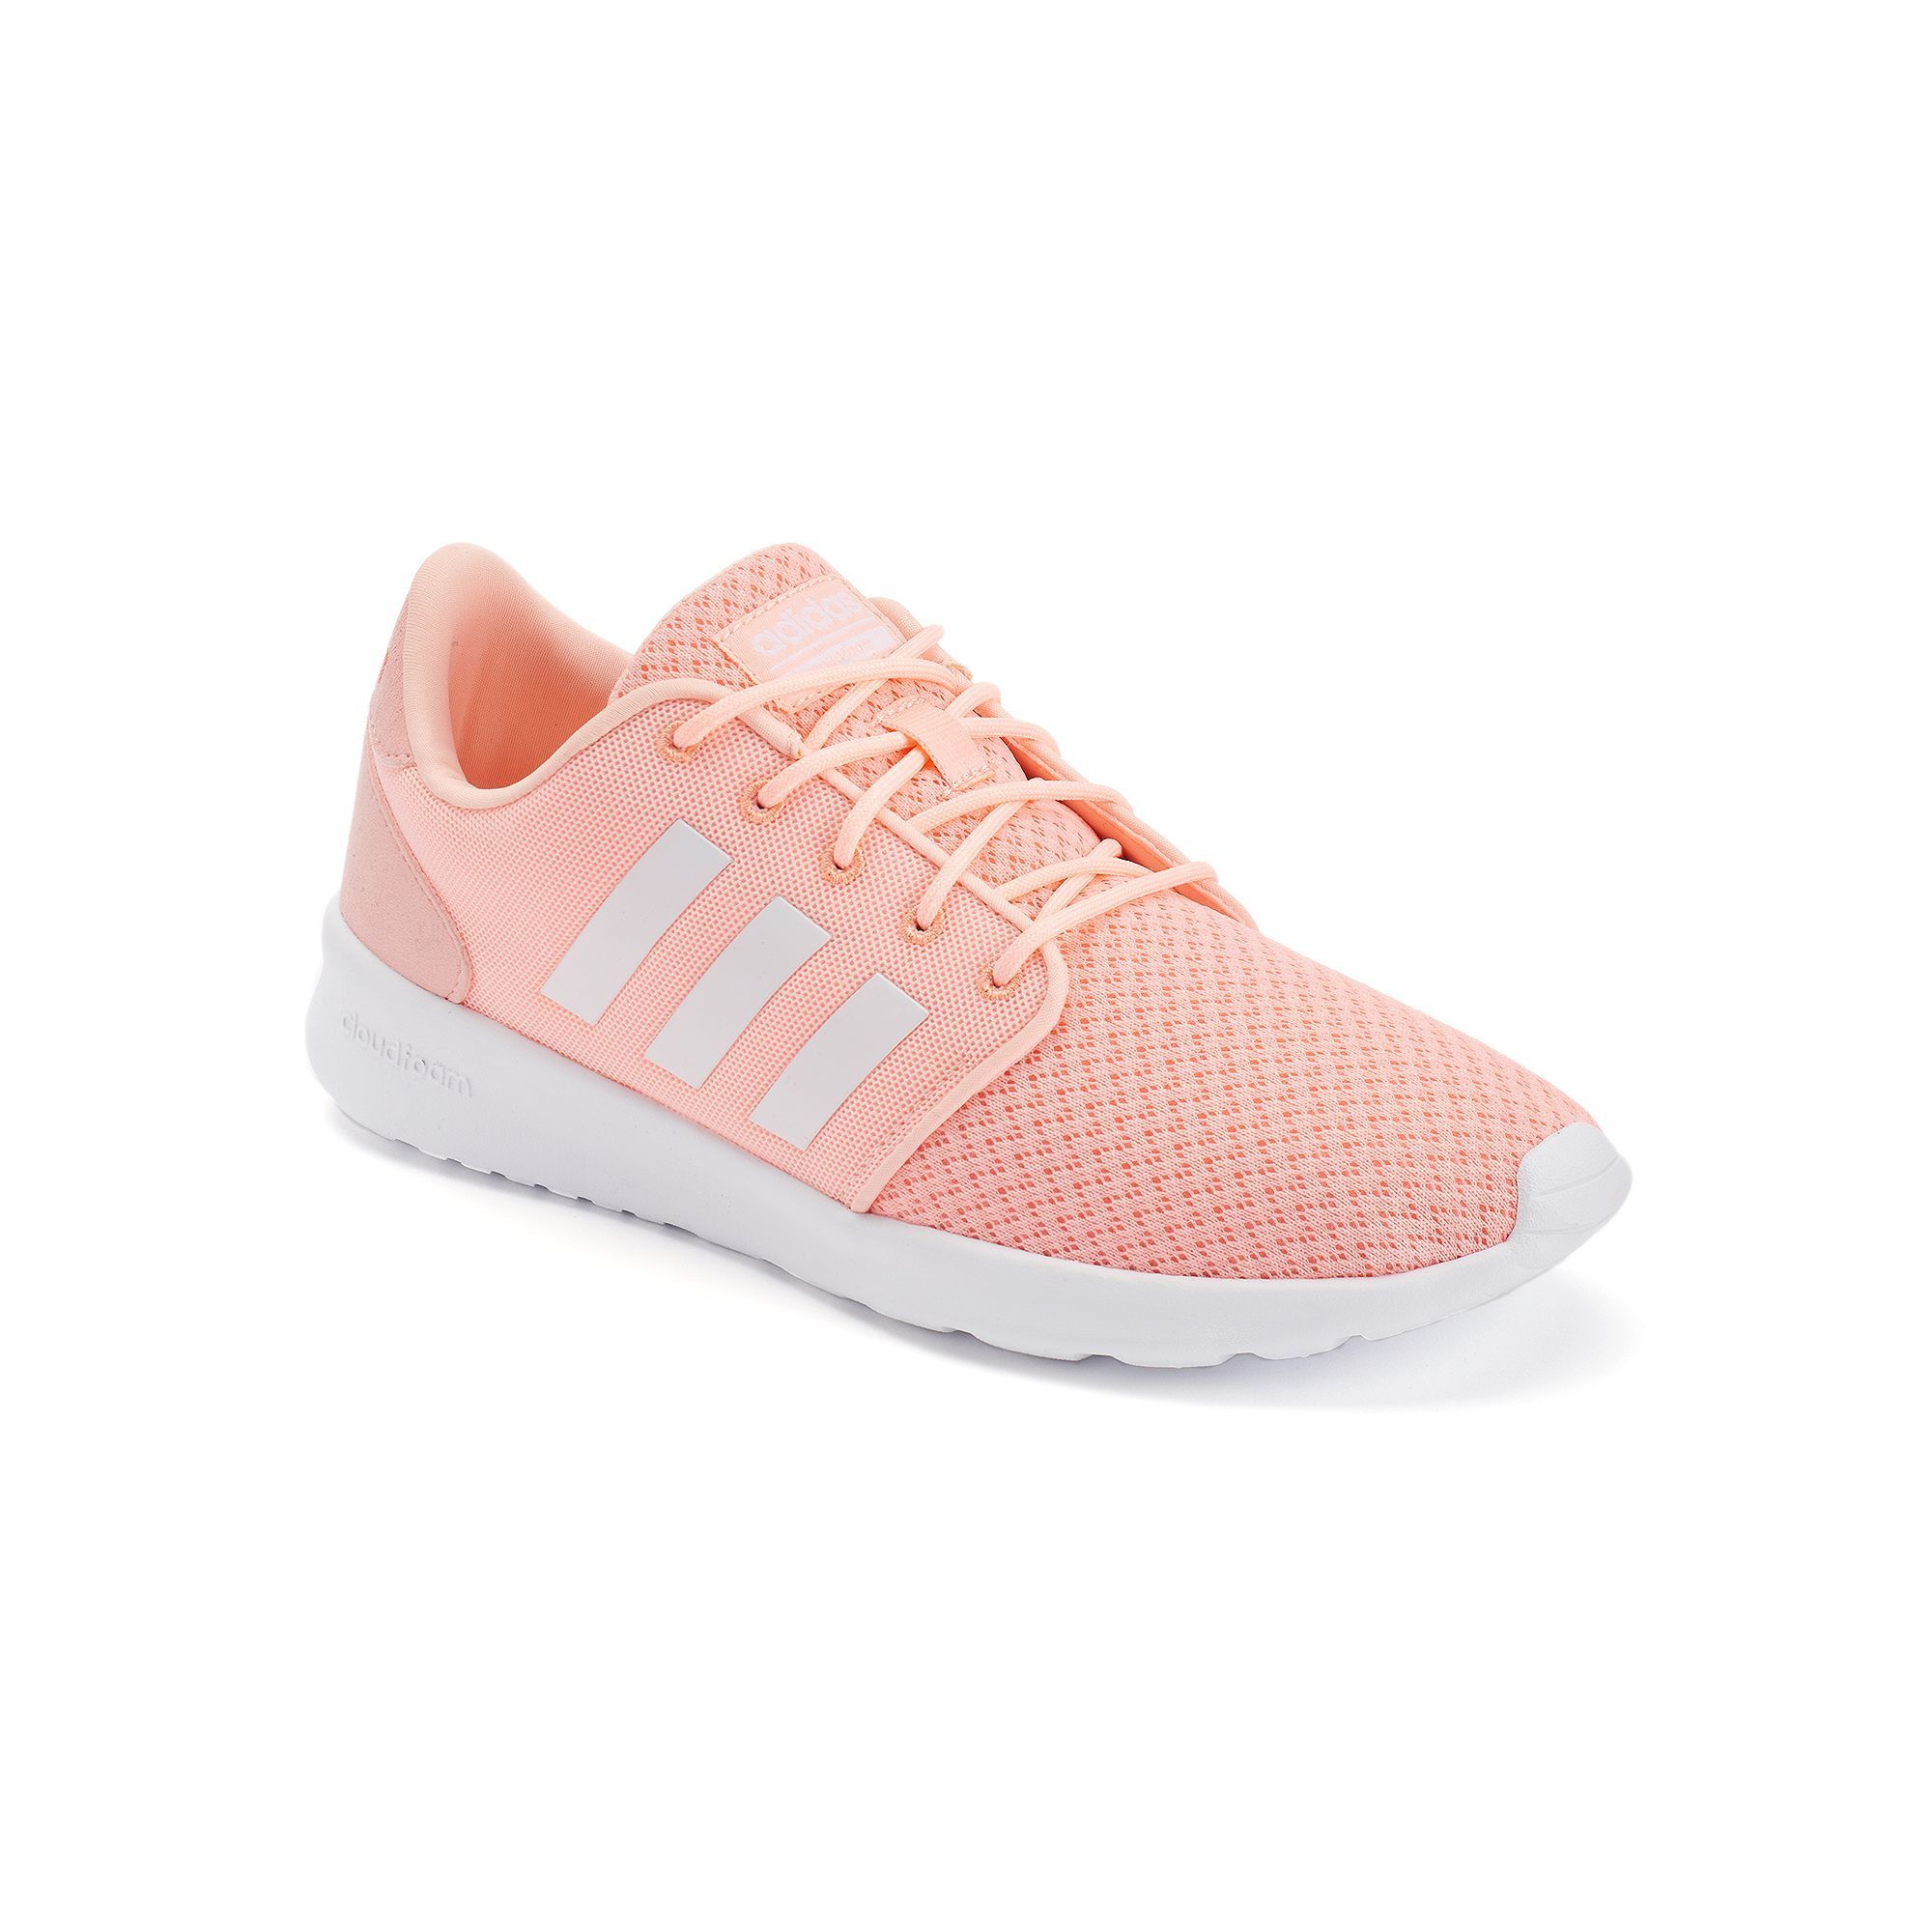 Adidas NEO Cloudfoam QT Racer Women\u0027s Shoes, Light Pink